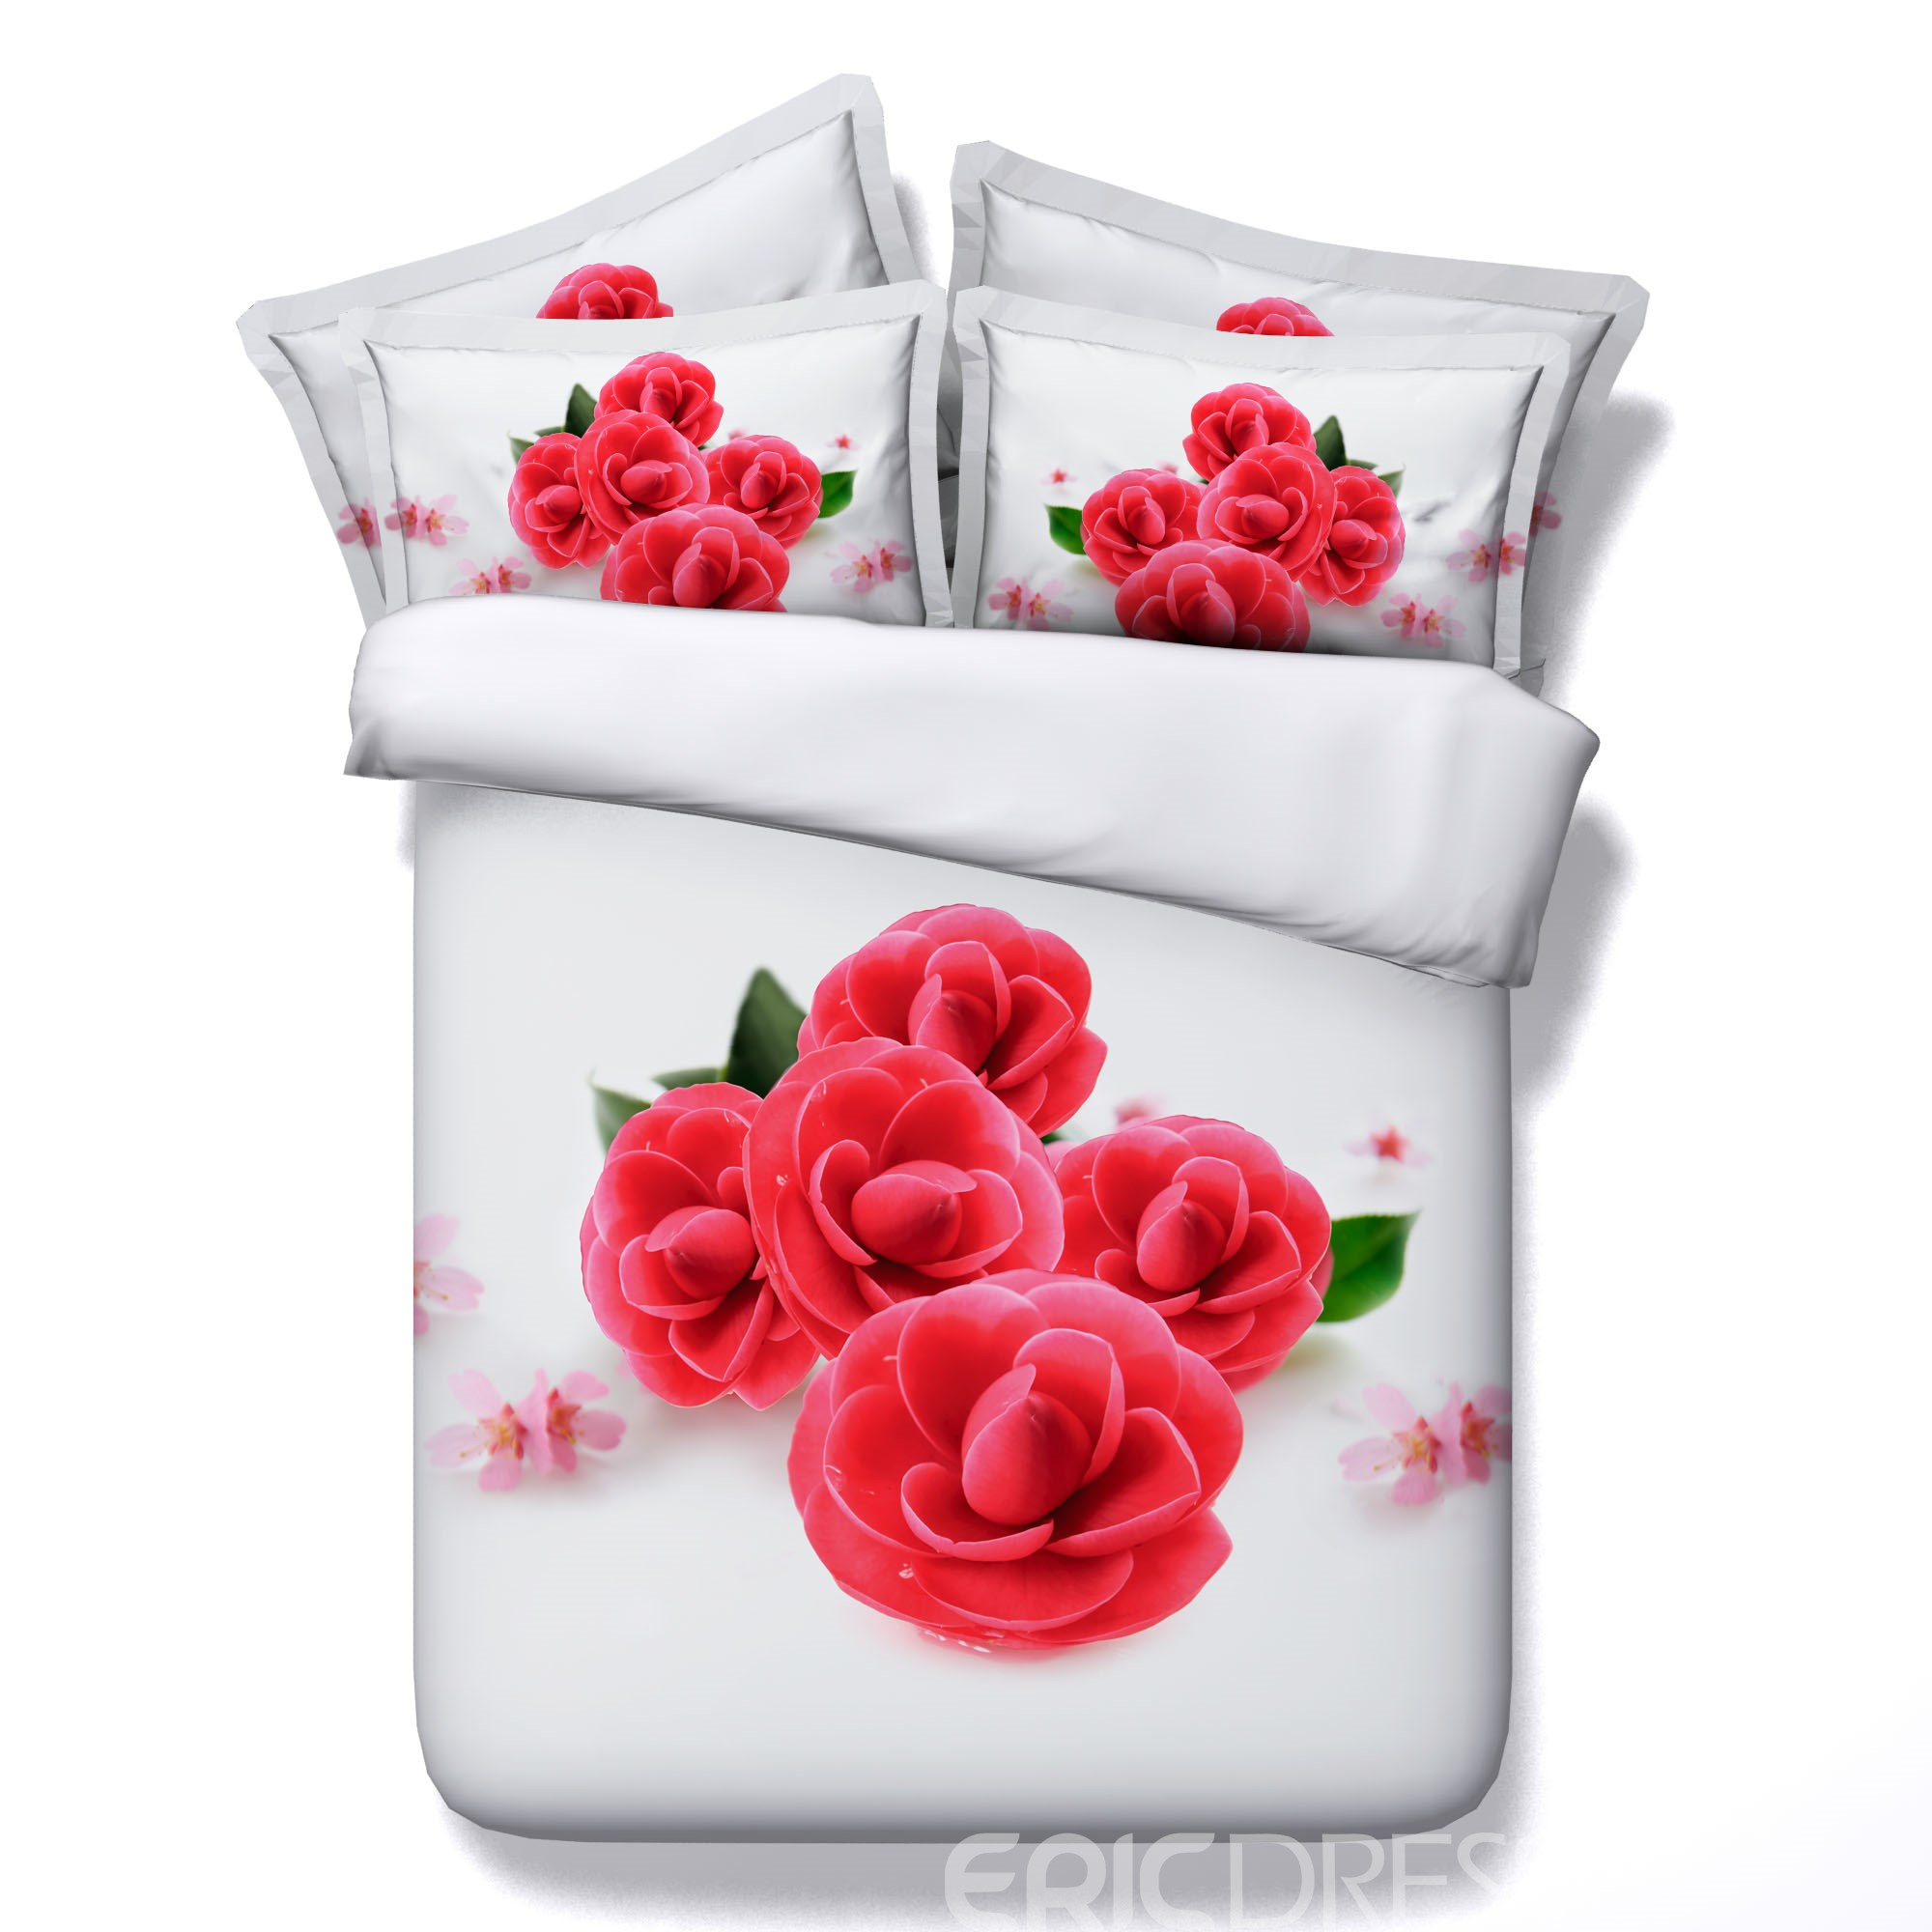 Vivilinen 3D Red Blooms Printed Cotton 4-Piece White Bedding Sets/Duvet Covers